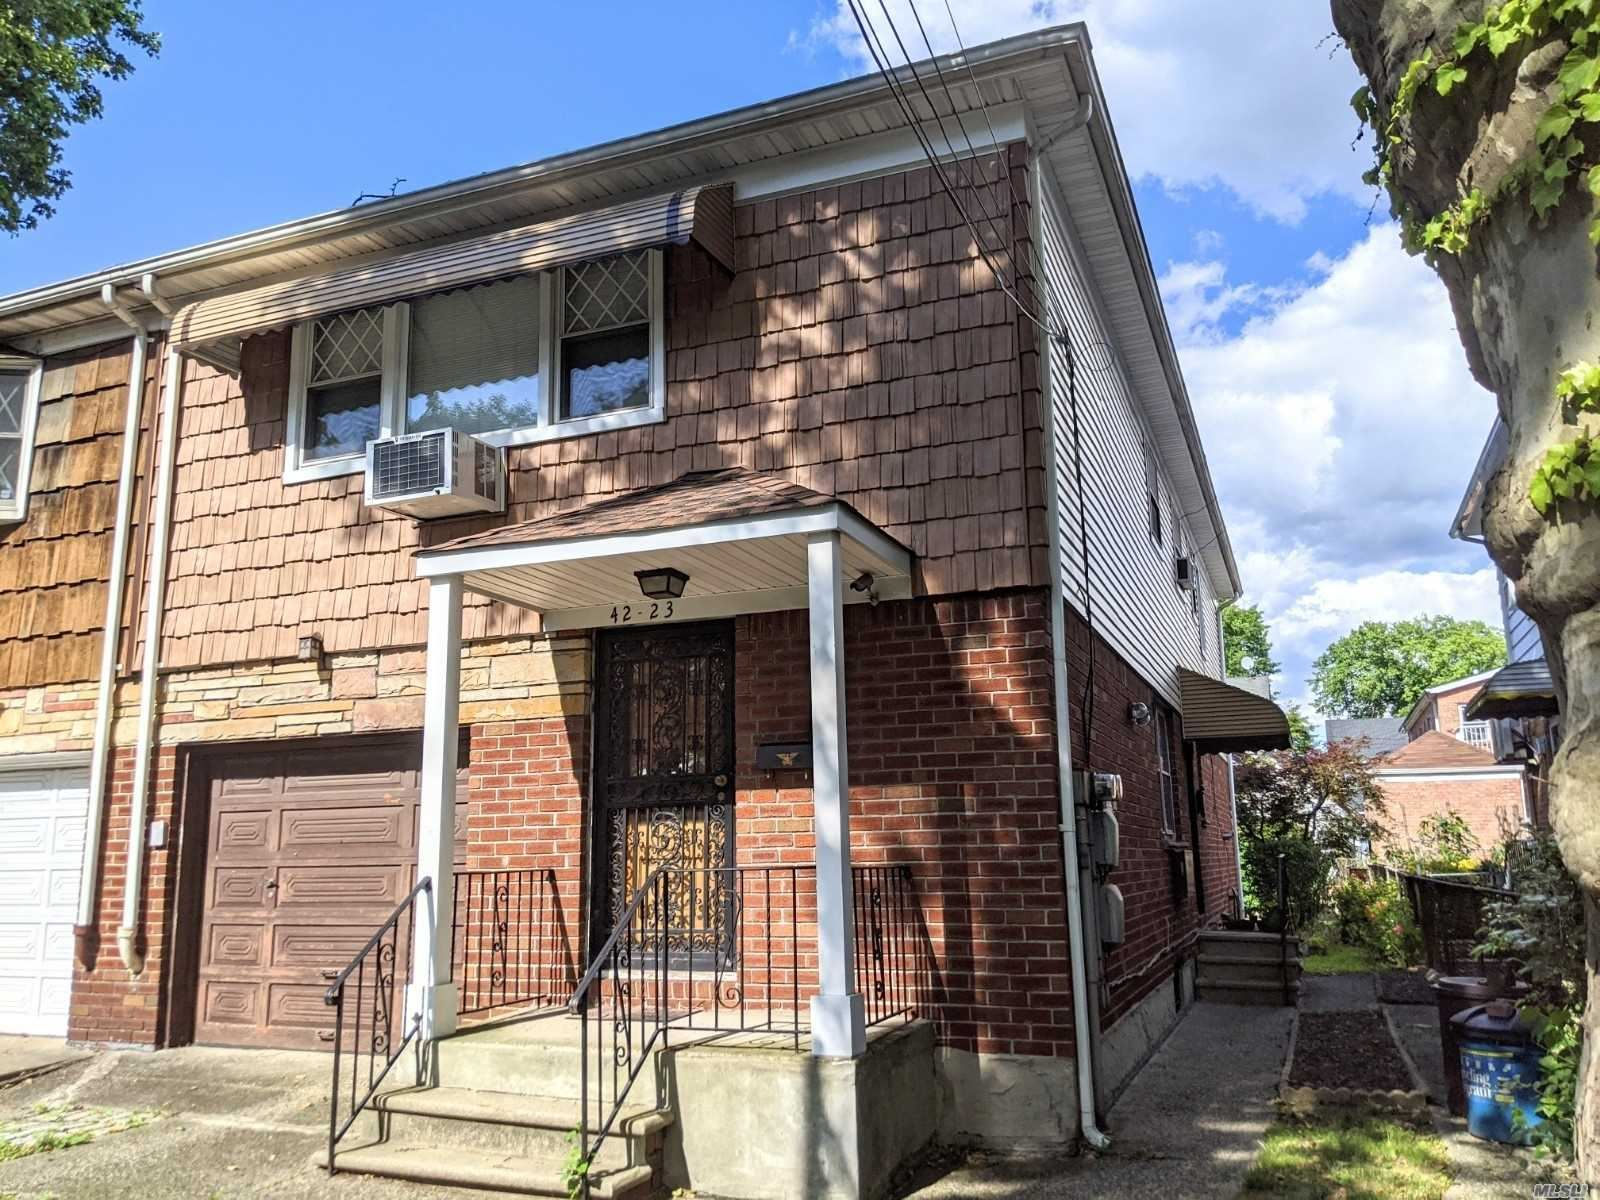 42-23 Clearview Expressway, Bayside, NY 11361 - MLS#: 3222402